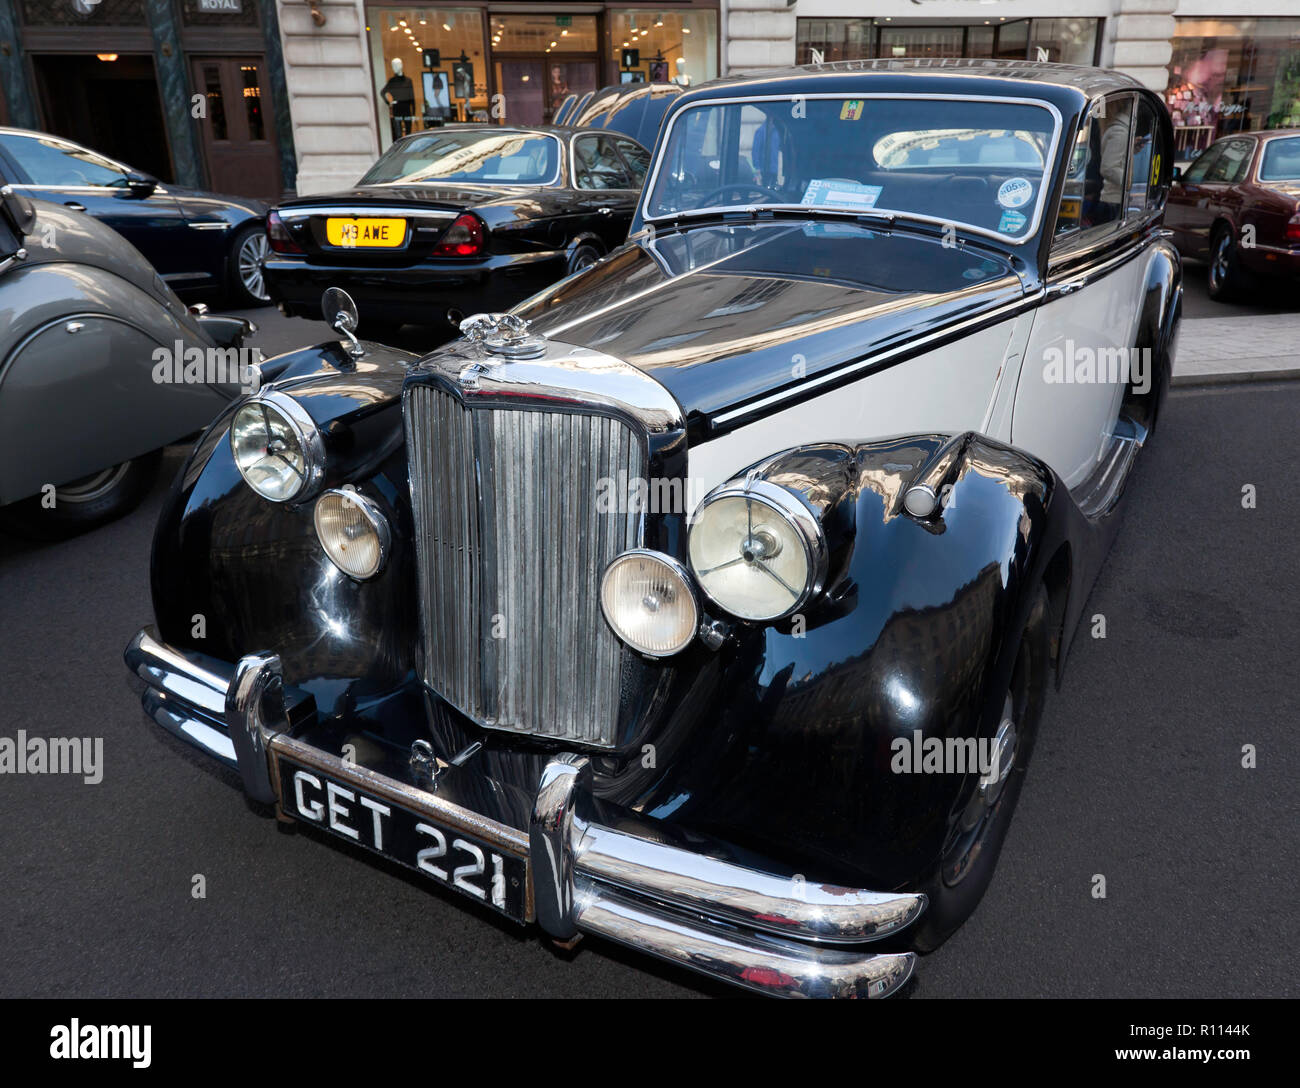 Three-quarter front view of a 1950 Jaguar Mark V Saloon, on display at the Regents Street Motor Show 2018 Stock Photo